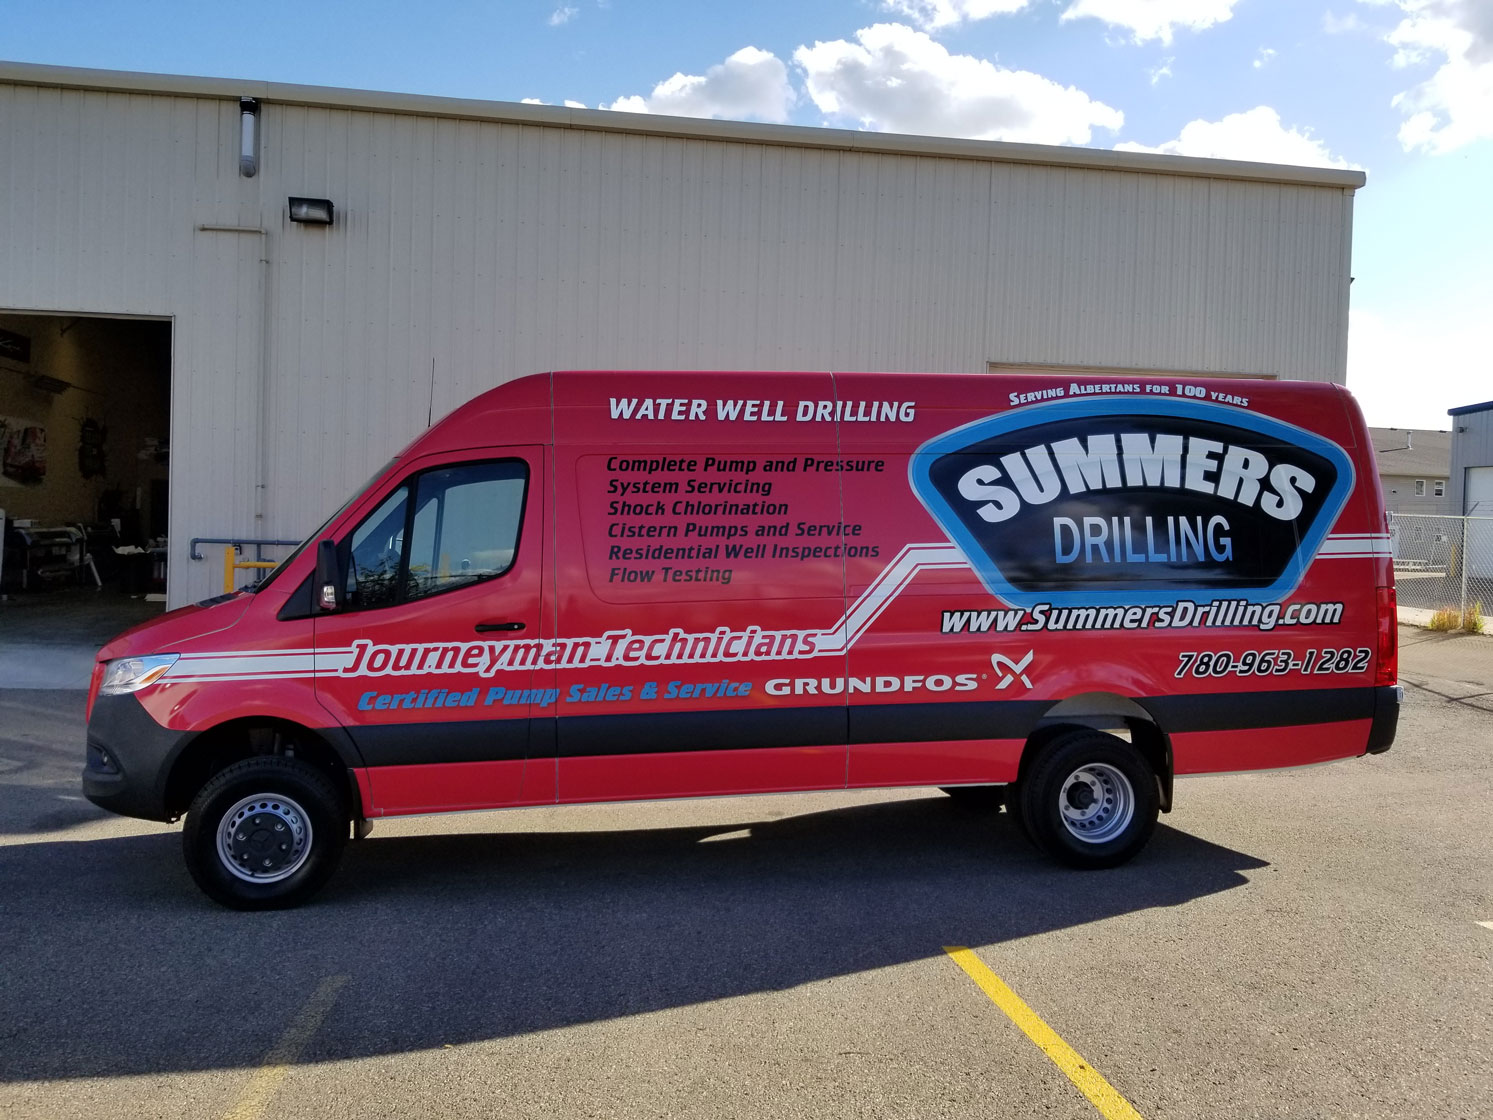 Summers Drilling Van Side